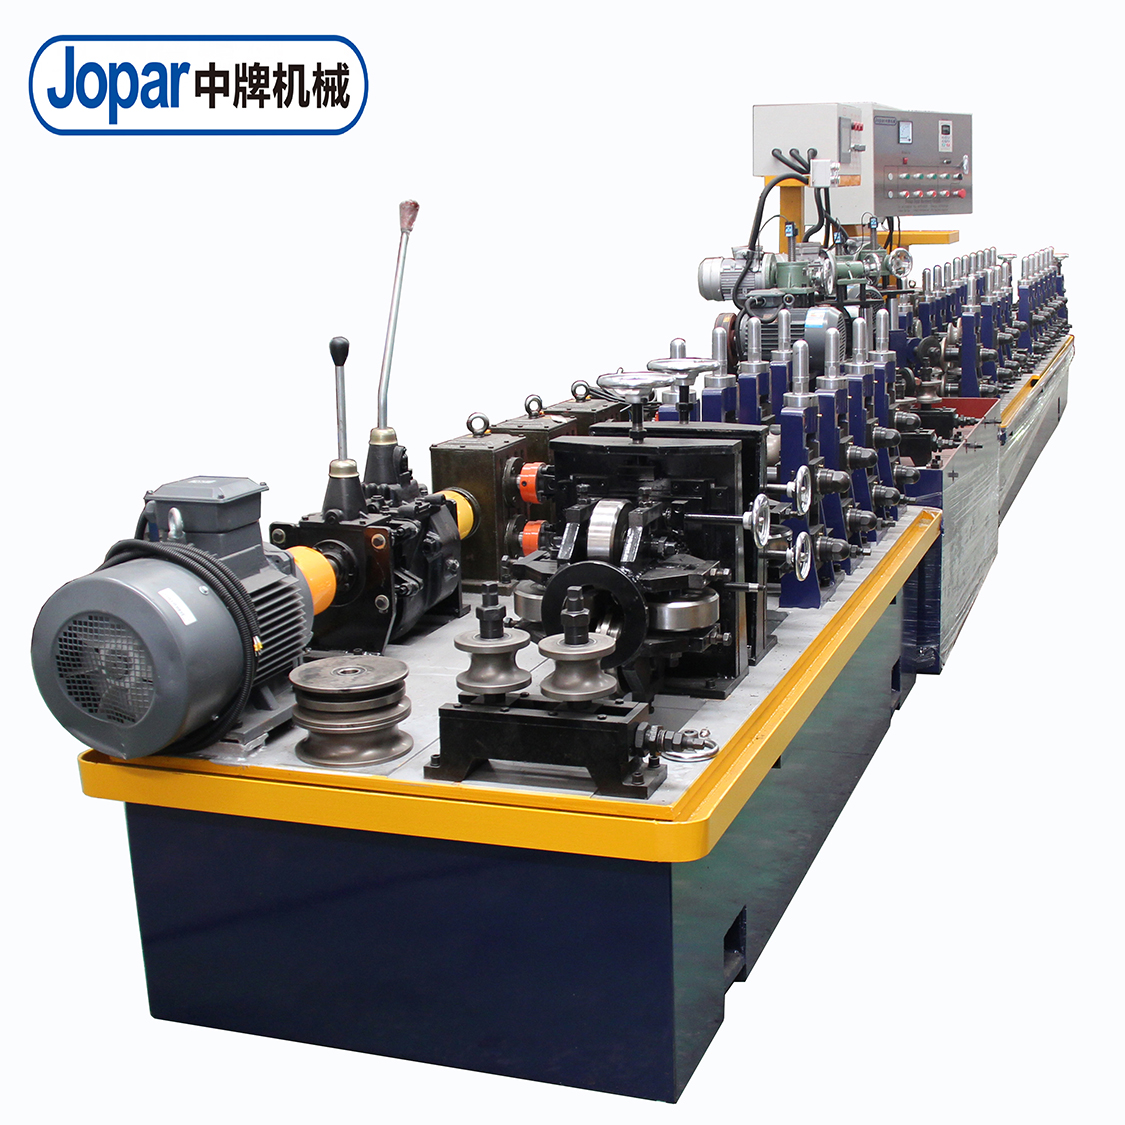 JOPAR Iron Tube Making Machine / Oval / Round Tube Mill <strong>Equipment</strong>